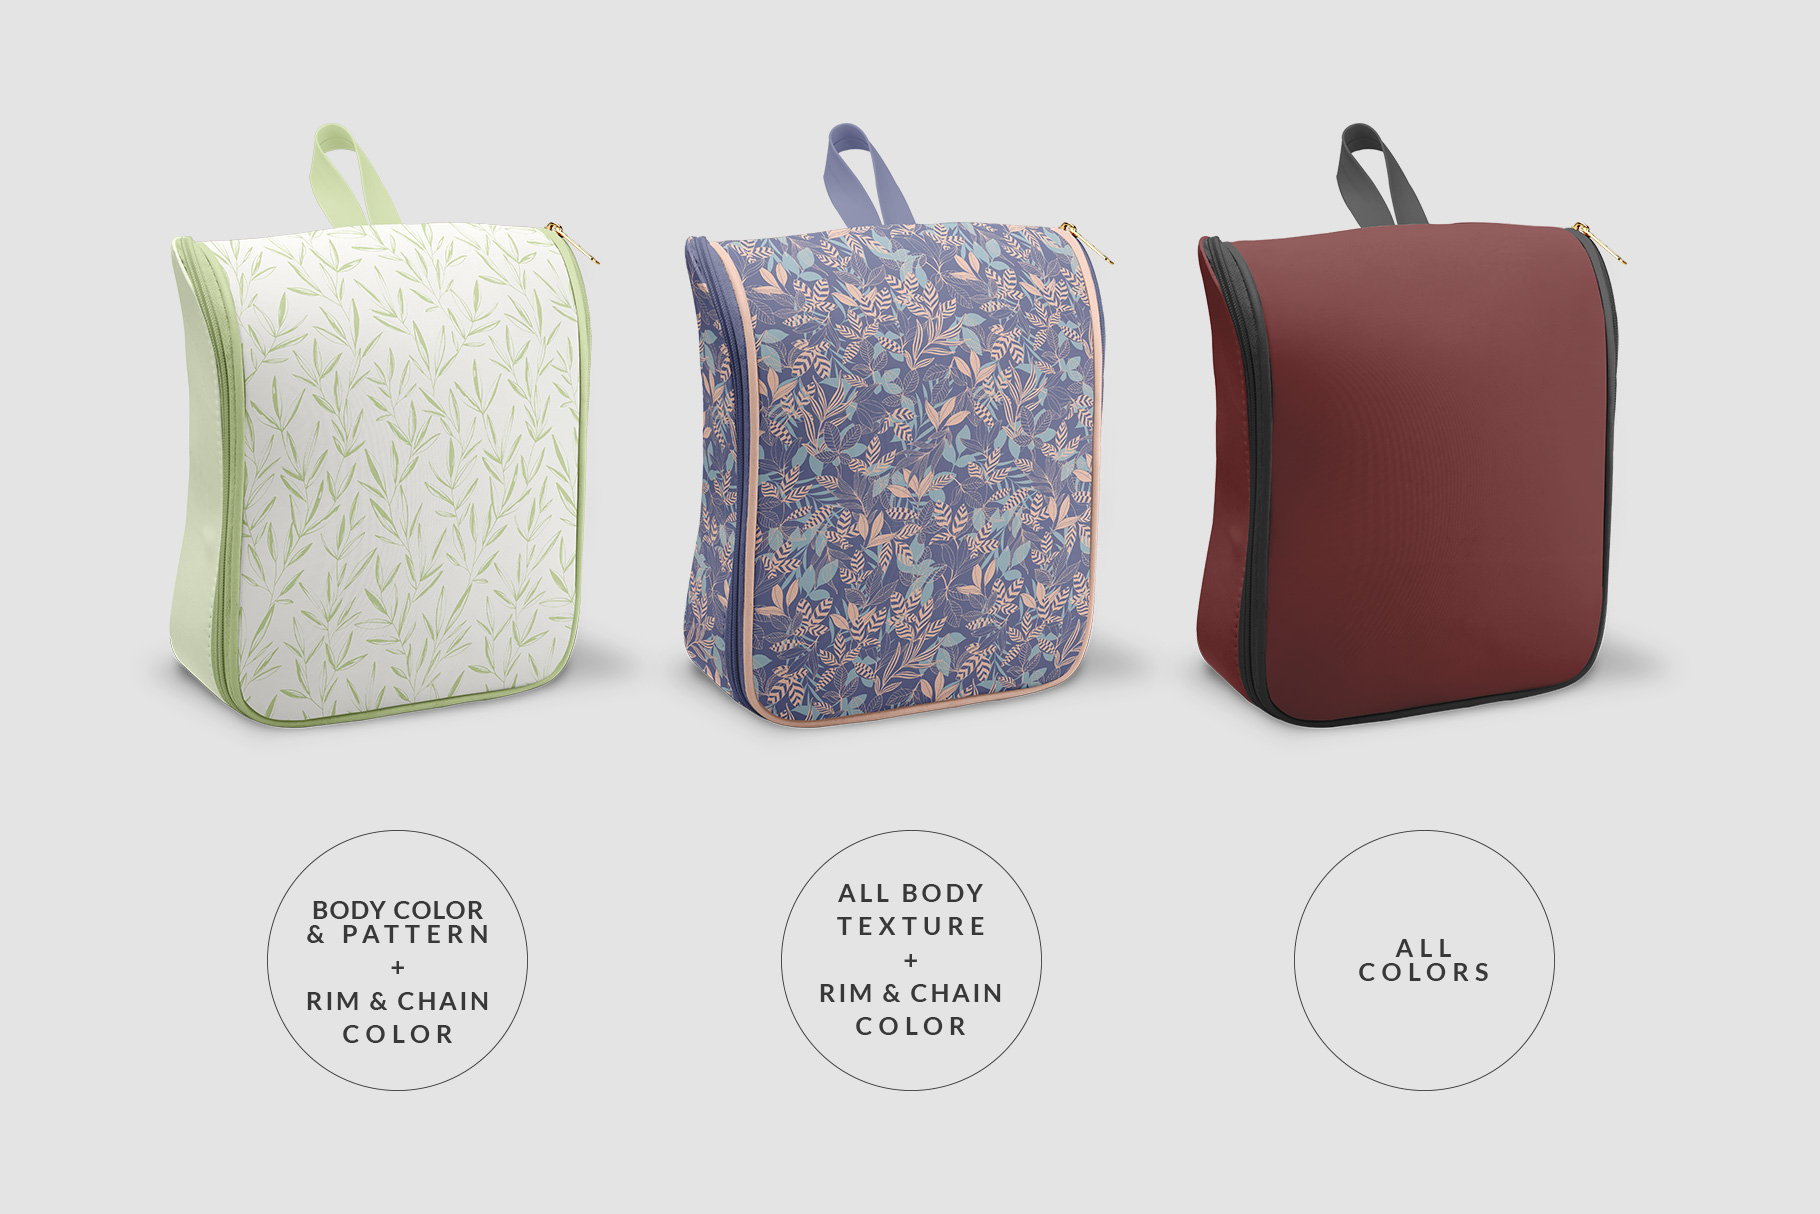 types of designes of the women's casual backpack mockup